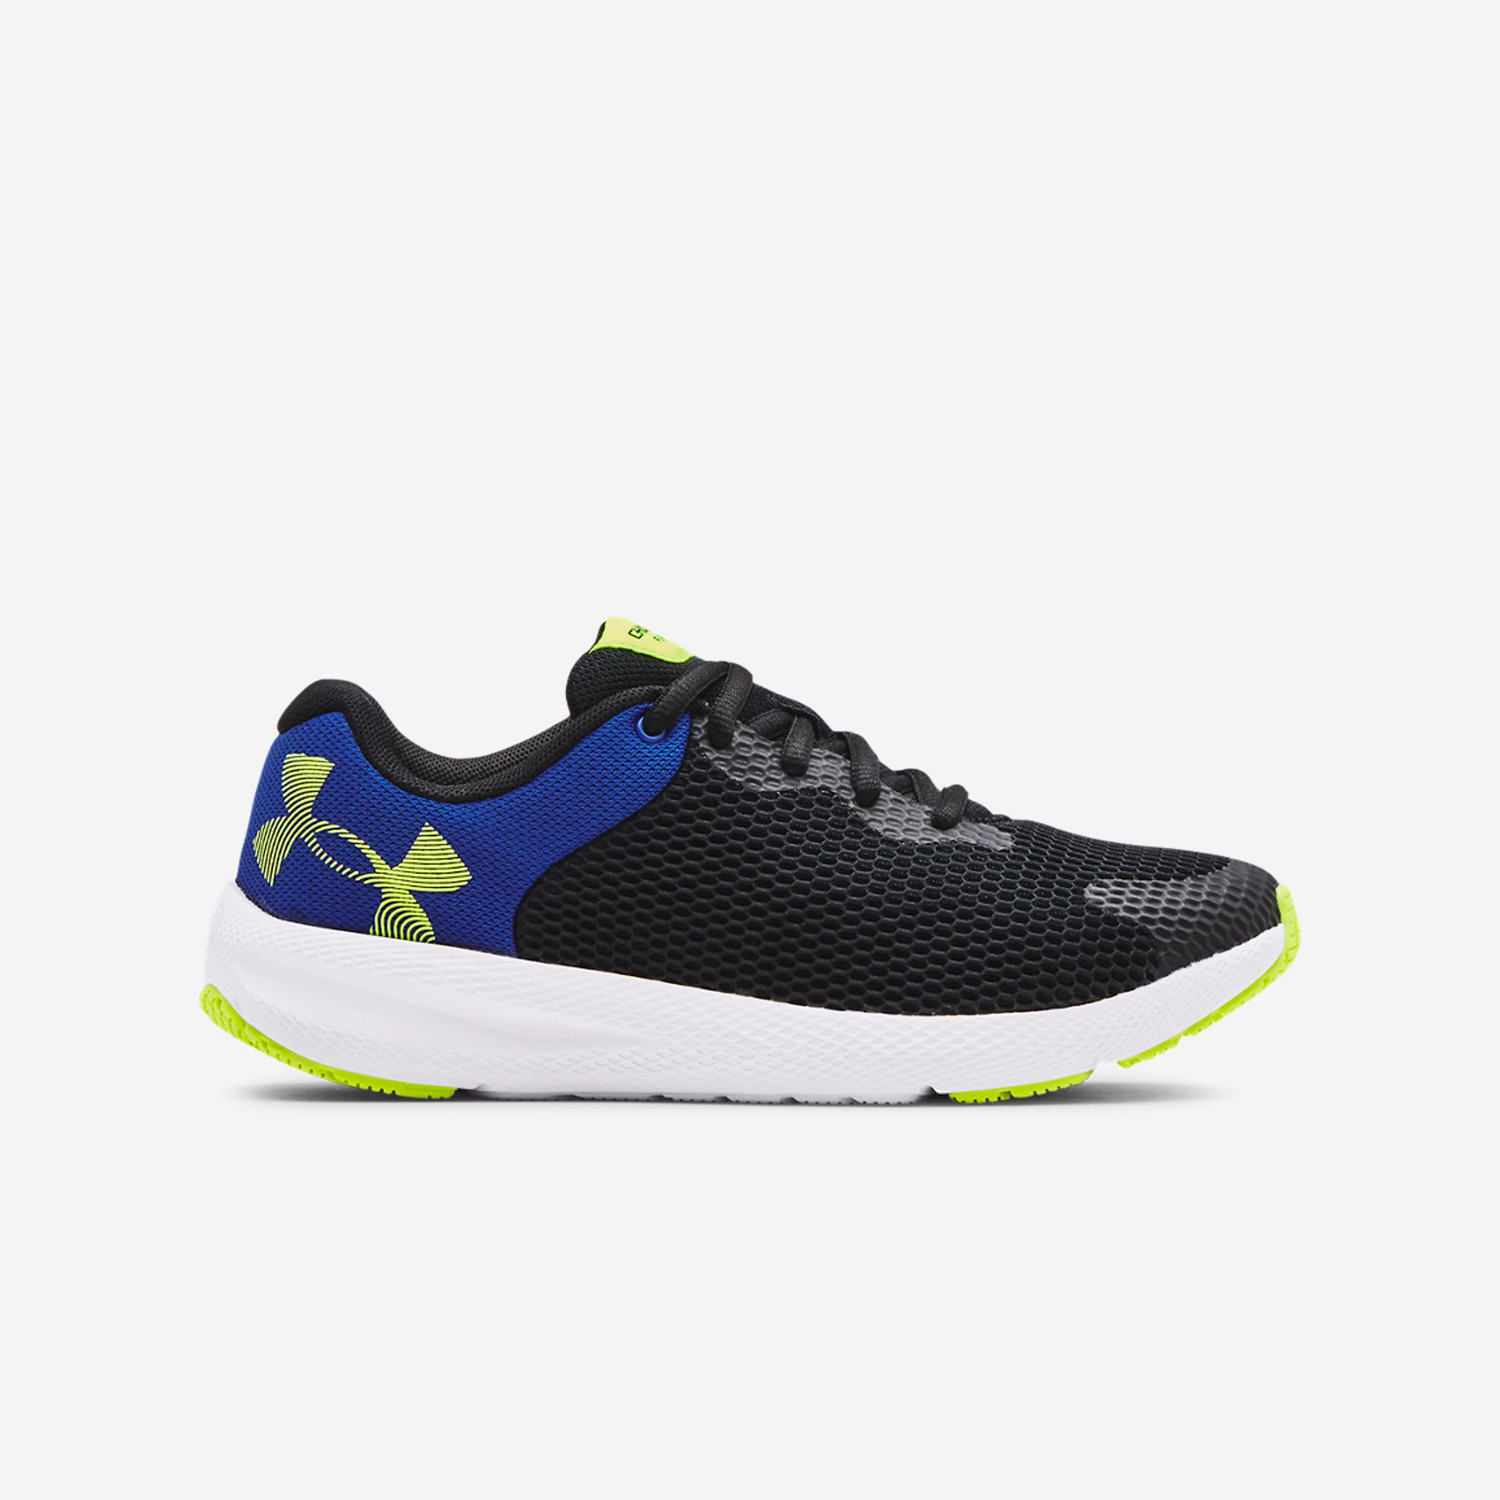 Under Armour Charged Pursuit 2 Παιδικά Παπούτσια (9000087677_55180)